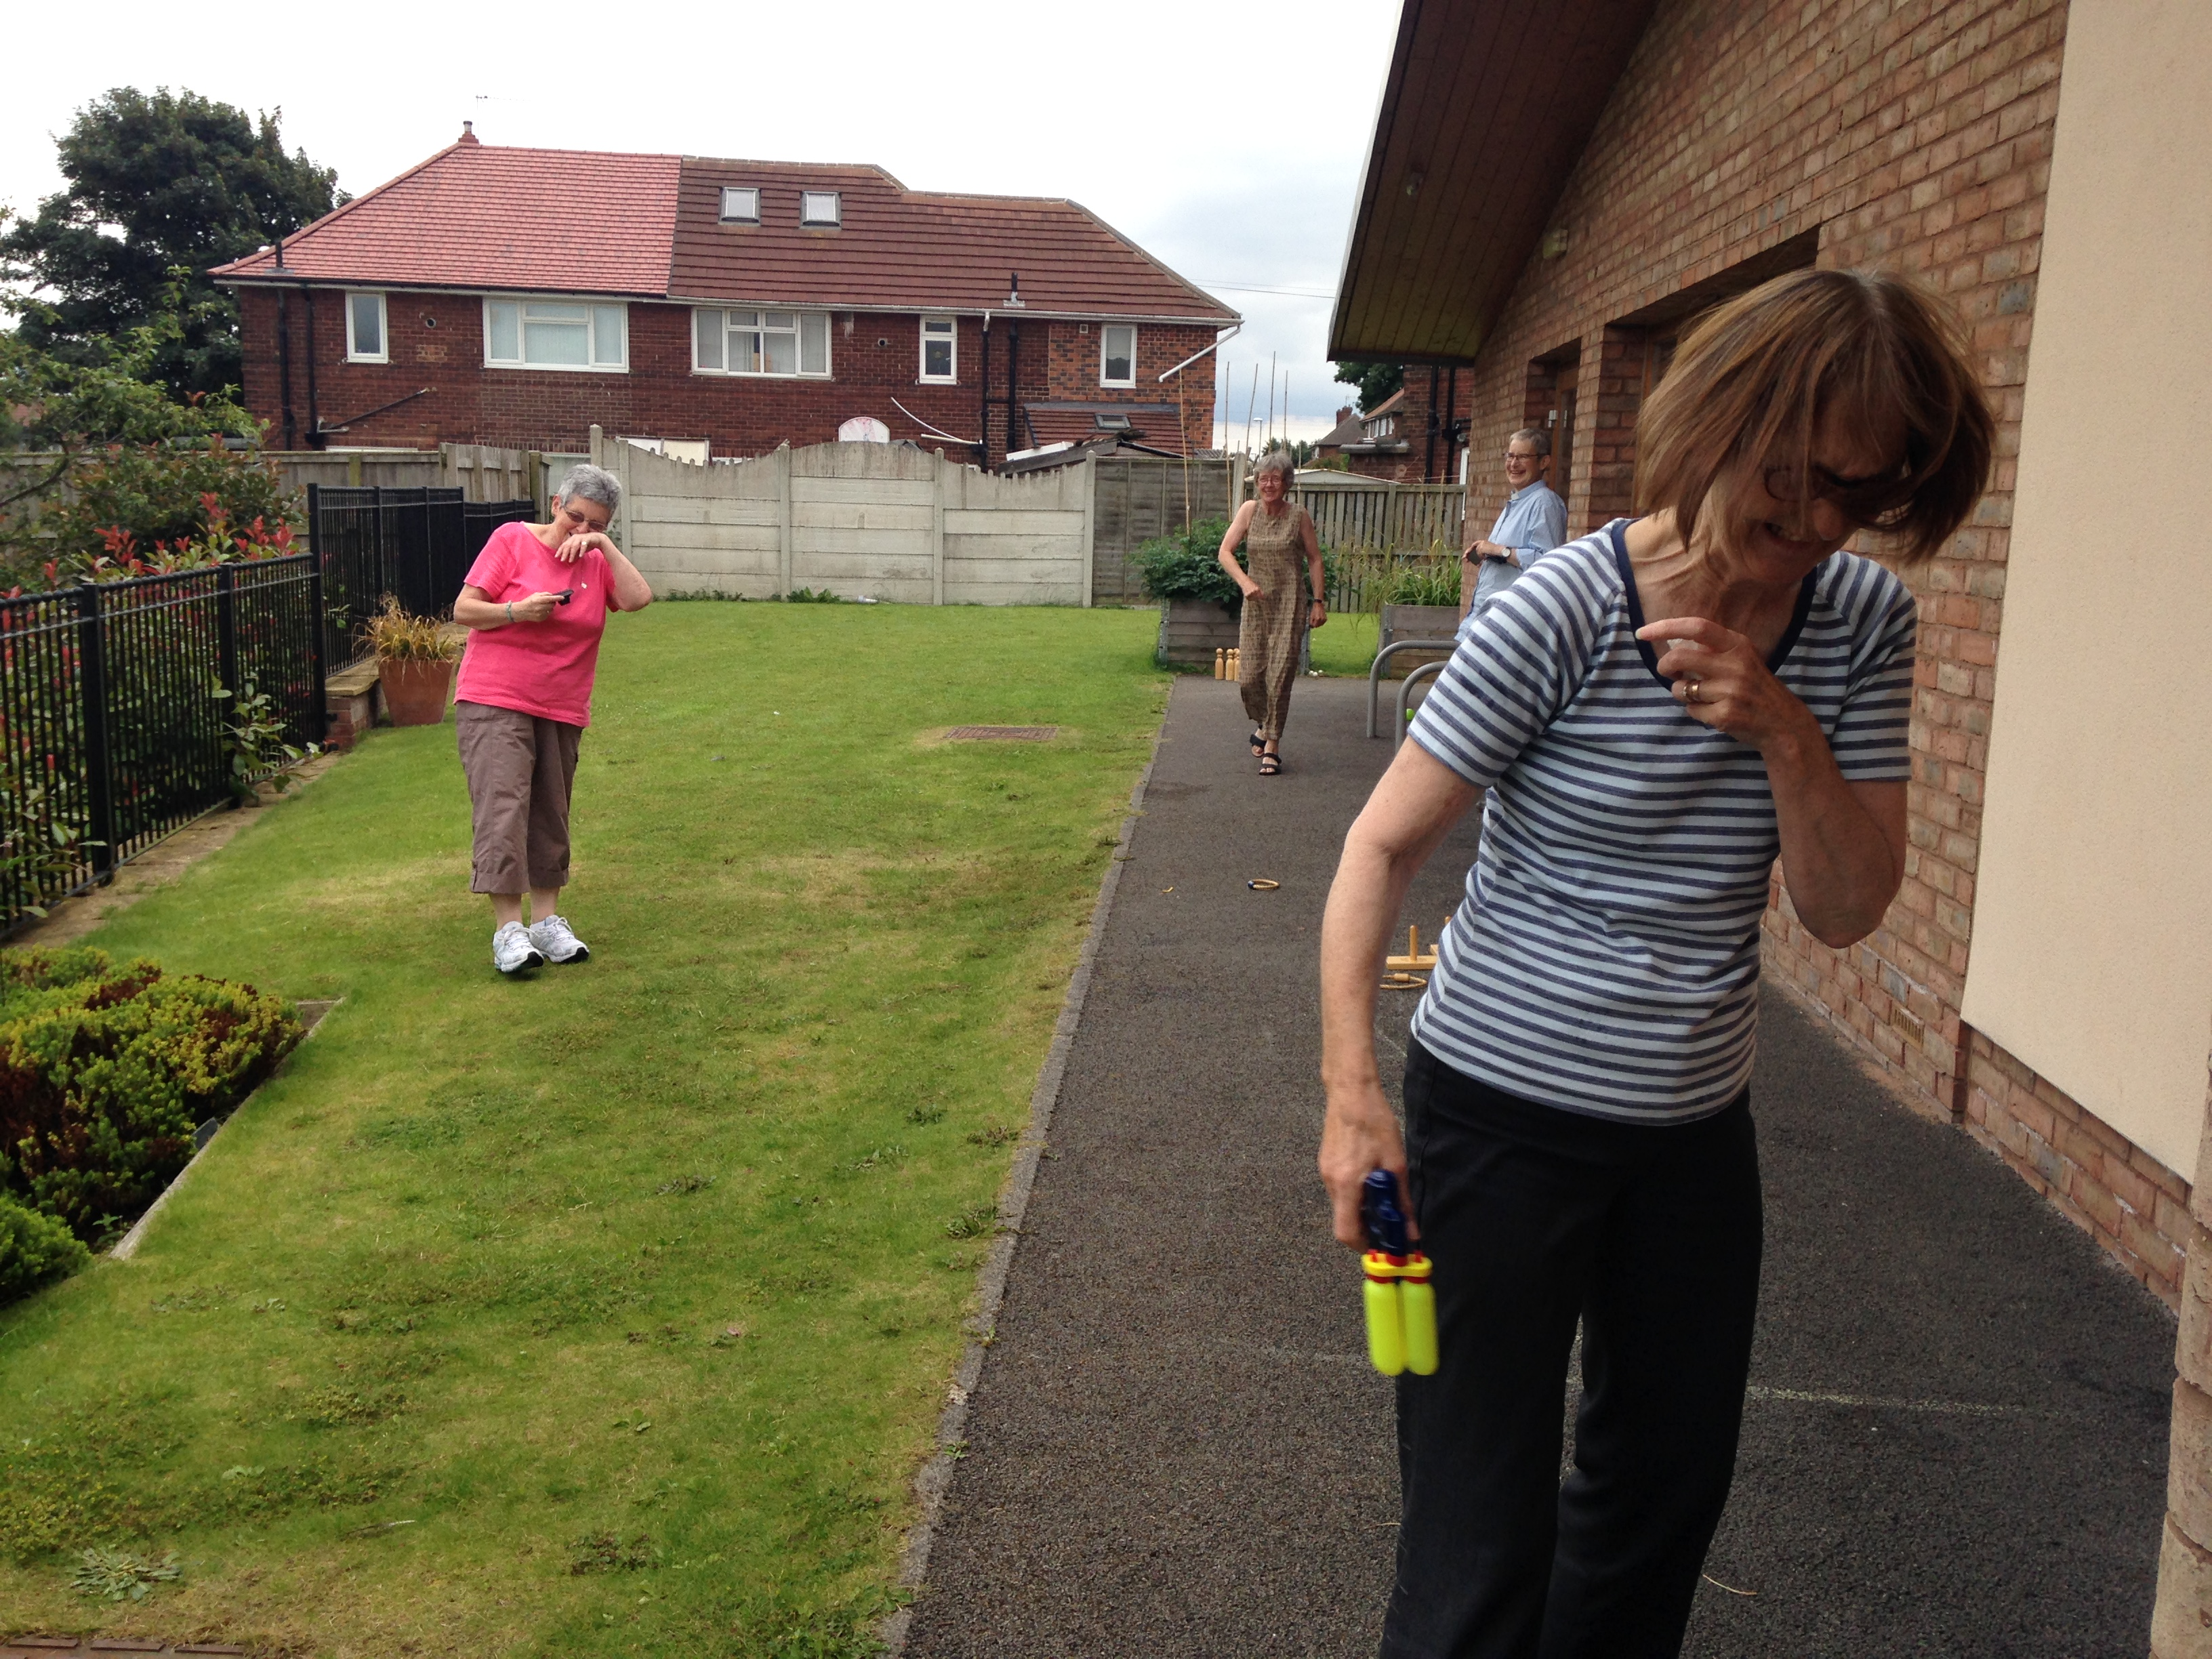 Fun and games outside